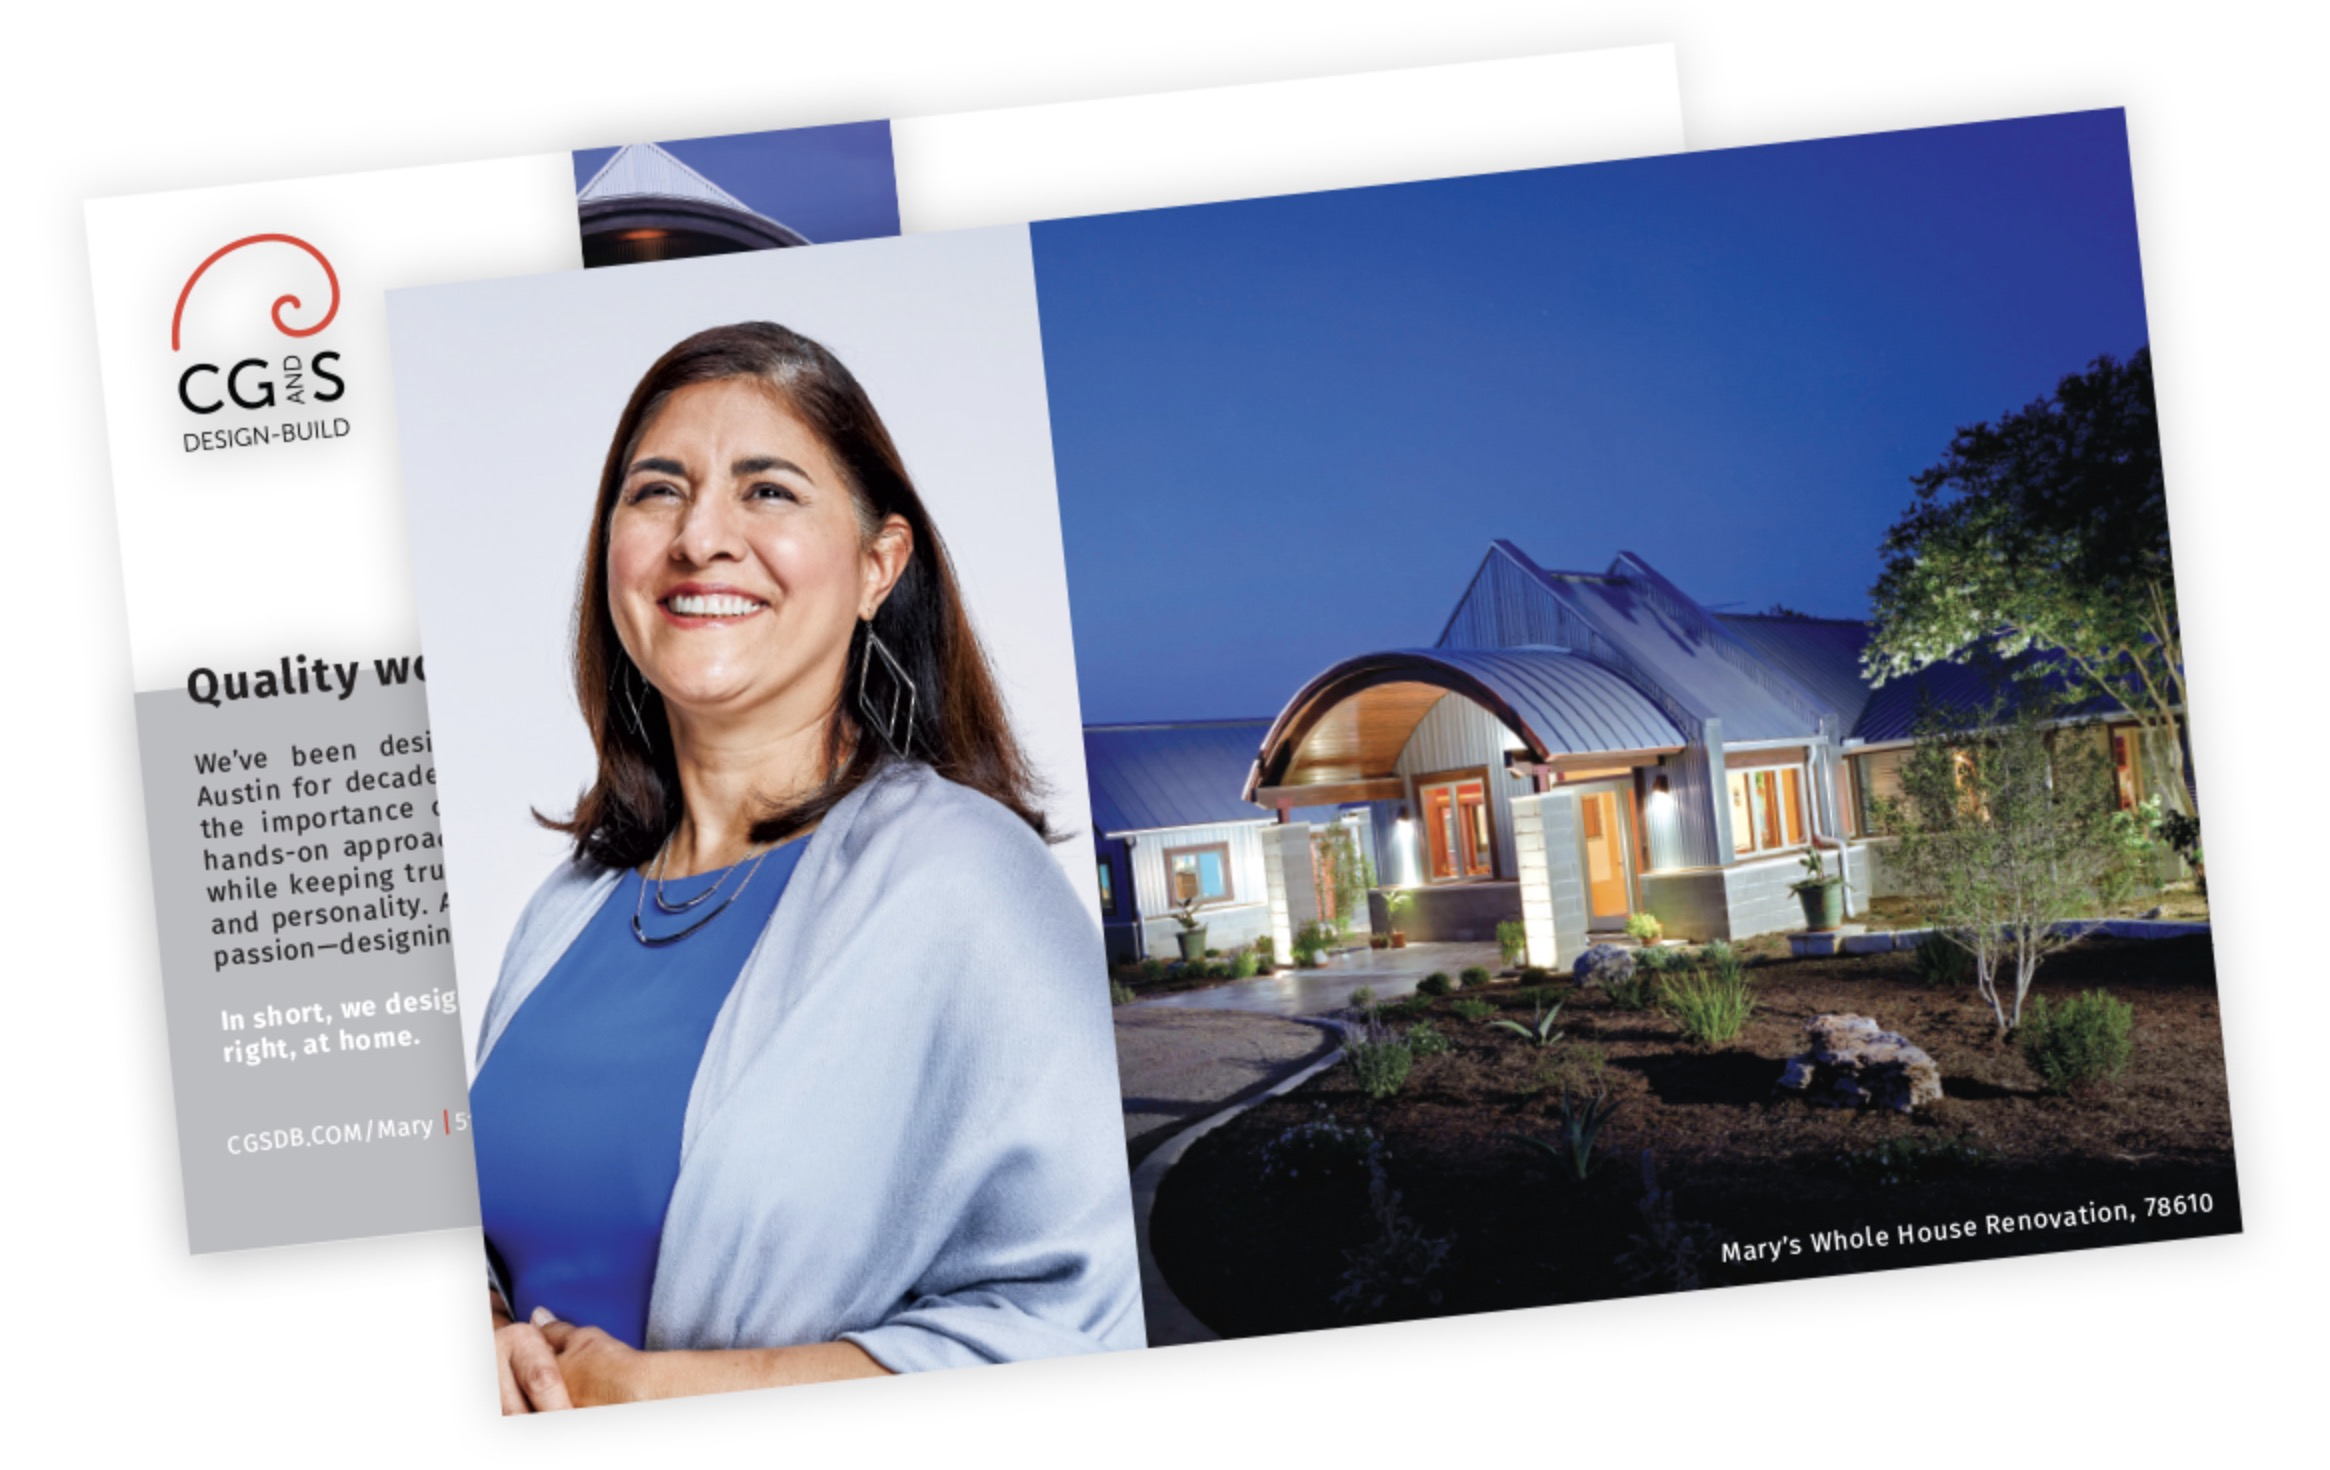 A campaign postcard of a woman in  a blue shirt with geometric jewelry beside the exterior of a home with geometric shapes against a blue sky.